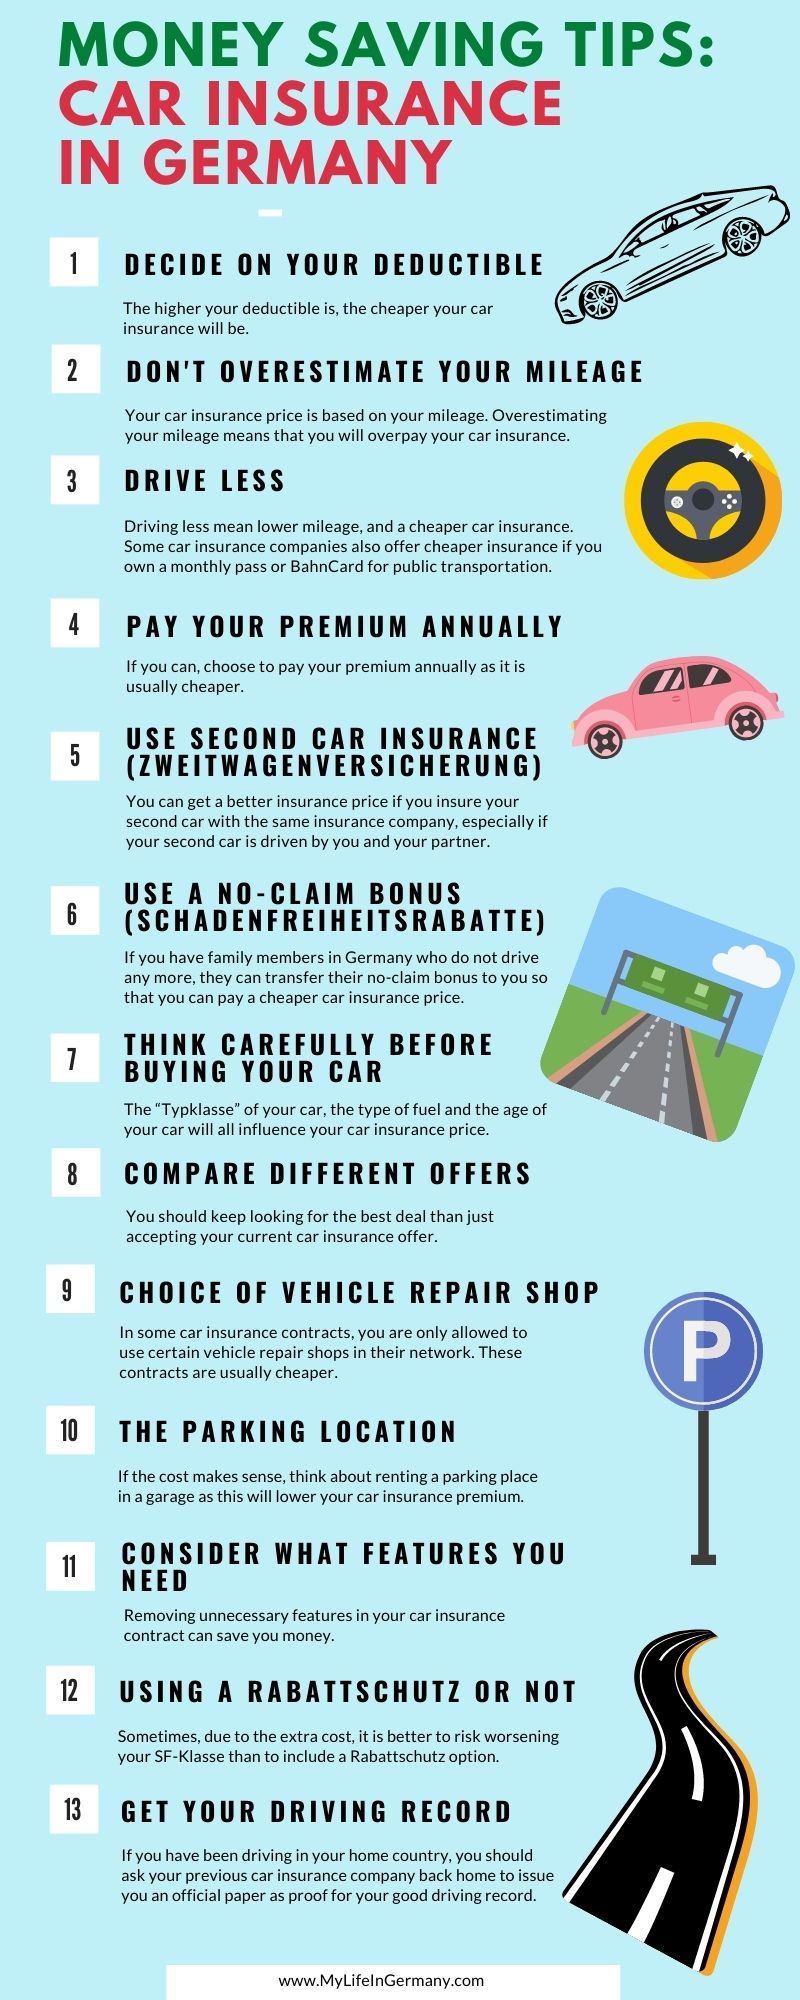 pinterest image edited infographic_car insurance in Germany_13 ways to save money_my life in germany_hkwomanabroad